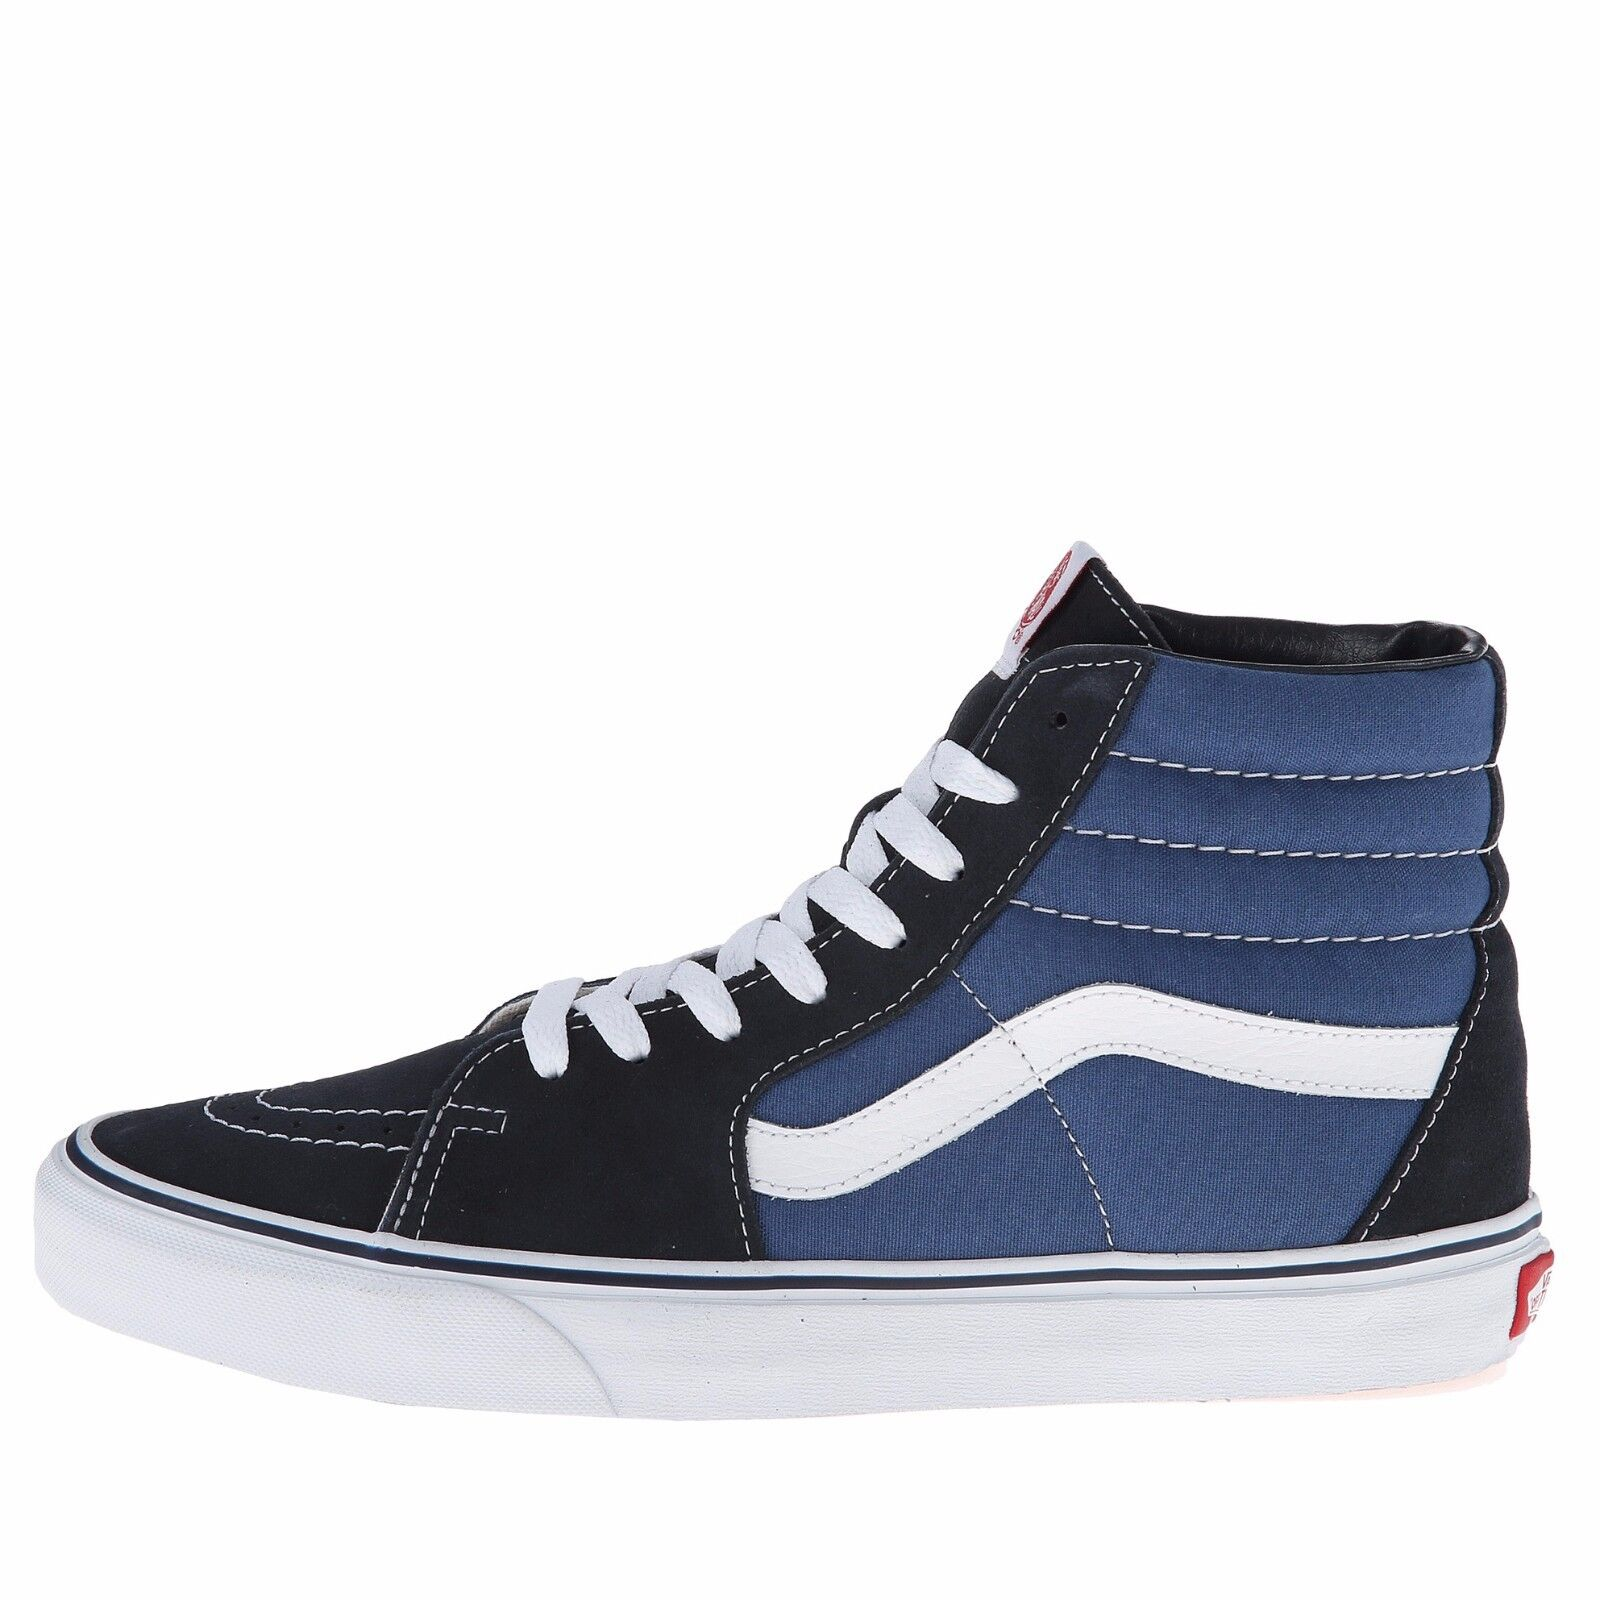 bbd3d476128346 Details about Mens Vans Sk8-Hi Top Fashion Sneaker Core Classic Navy Suede  Canvas All SZs NEW